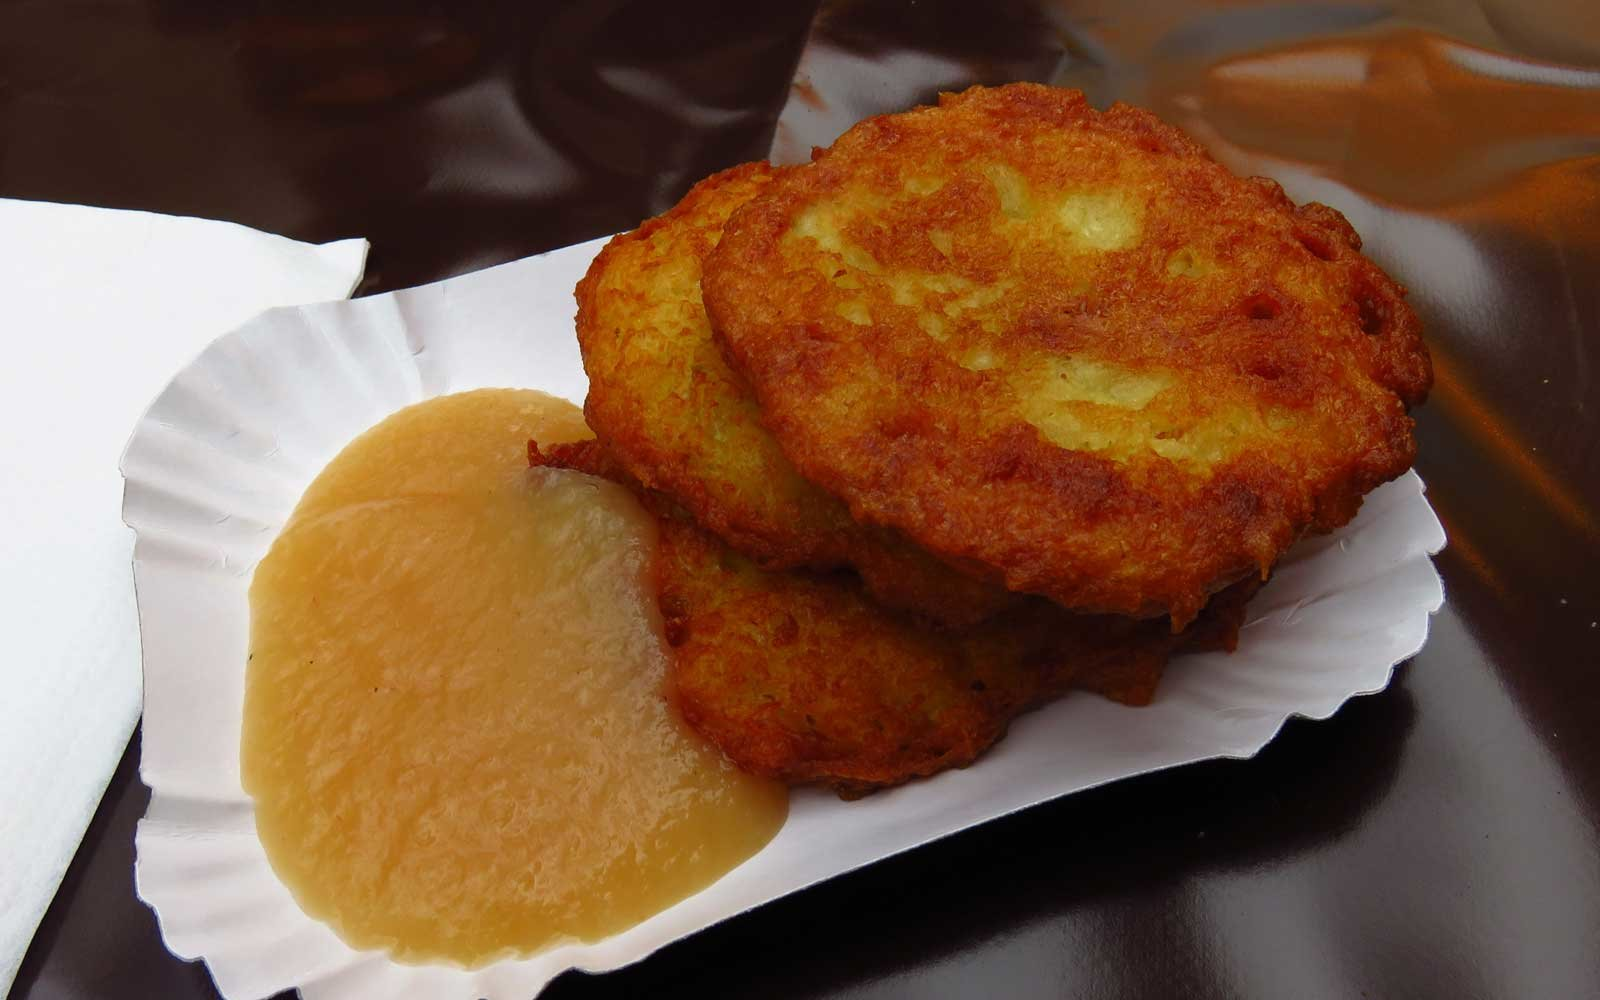 These German potato fritters are a crunchy and salty snack to enjoy and are often served with a side of applesauce.